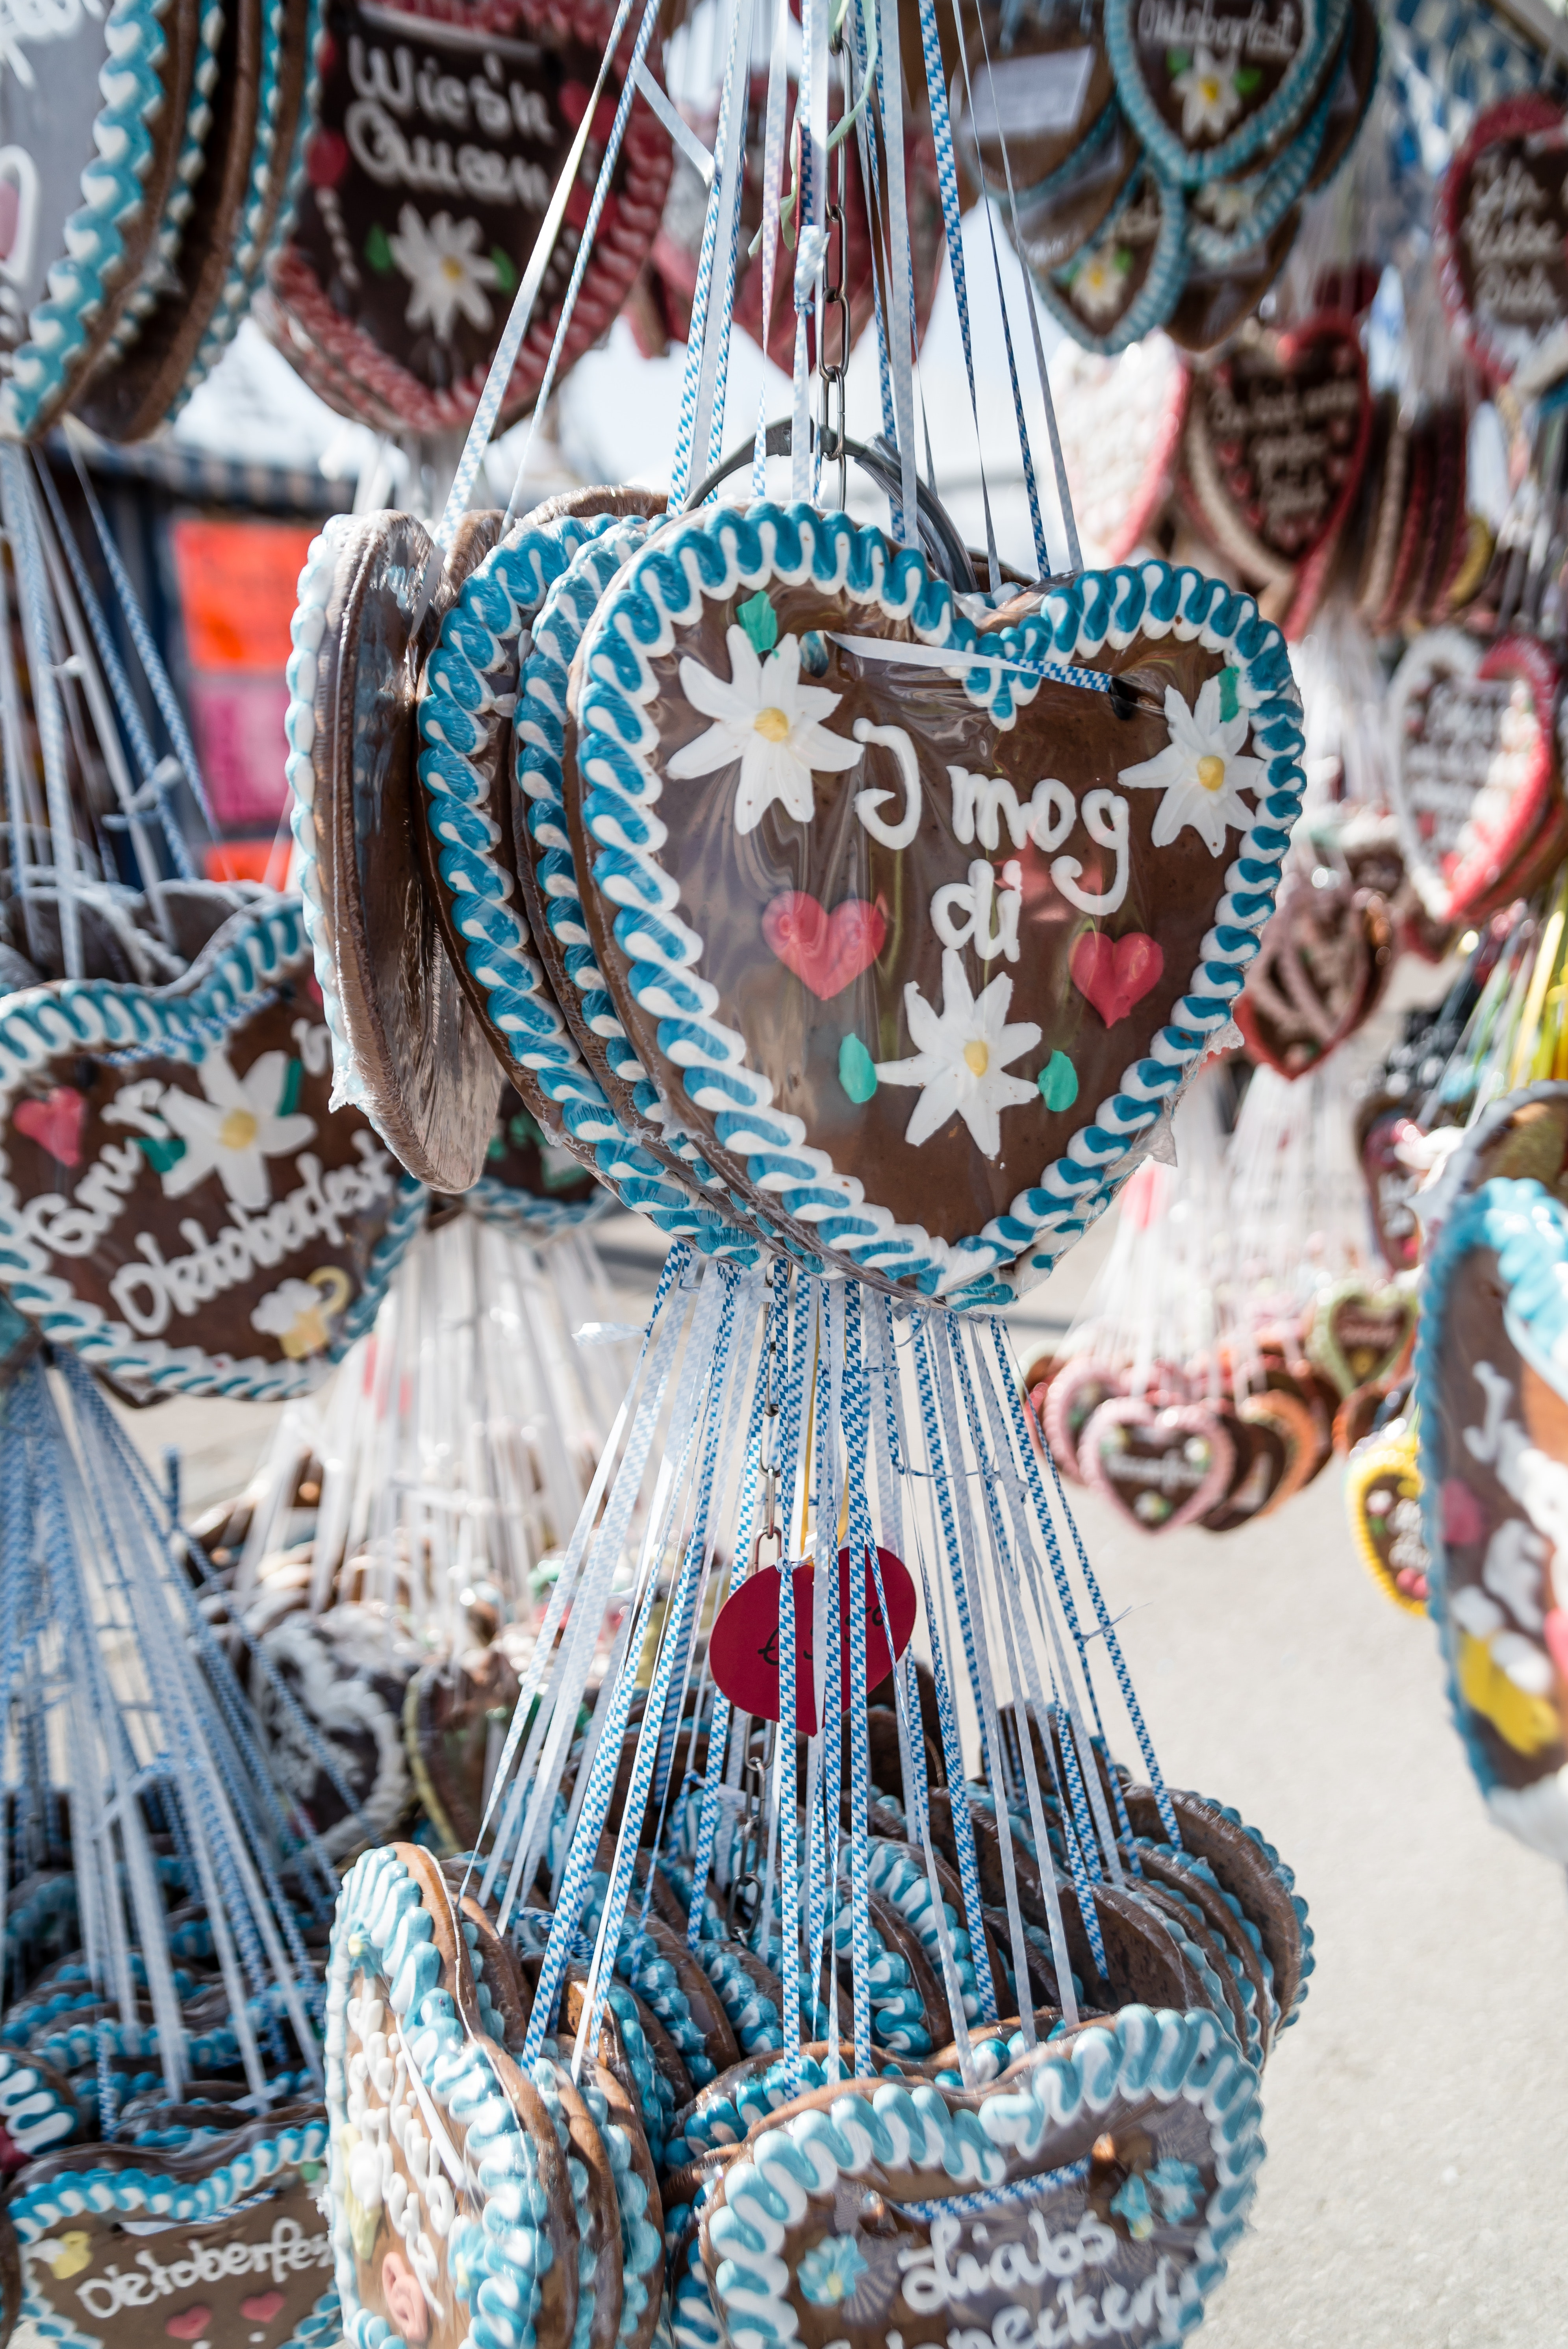 Brown, White, and Blue Heart Decor Lot · Free Stock Photo